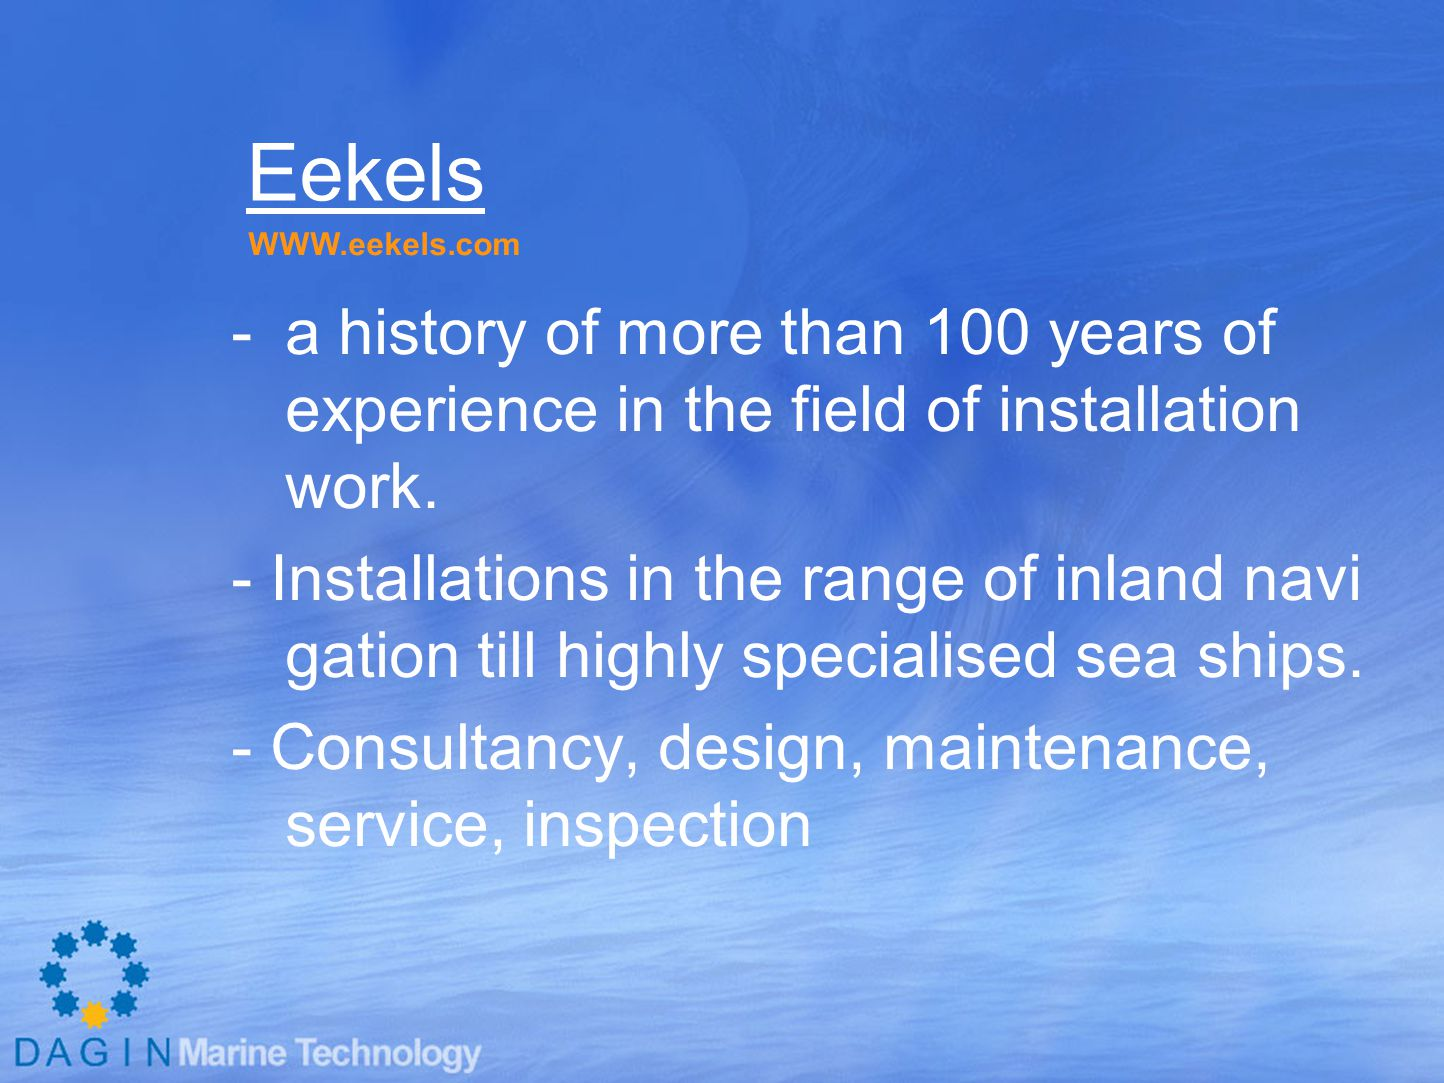 Eekels WWW.eekels.com. a history of more than 100 years of experience in the field of installation work.